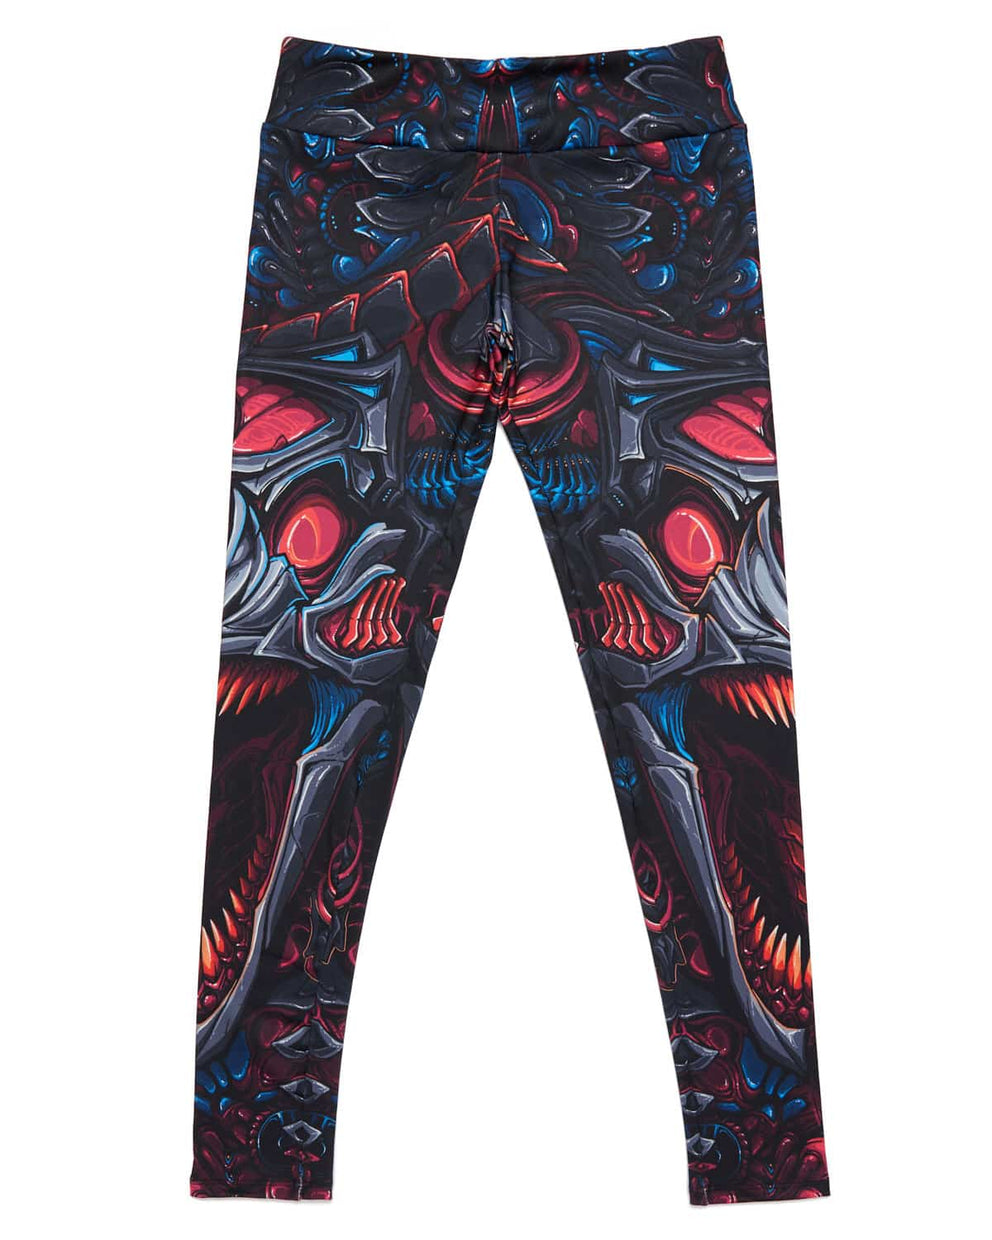 Excision 'Venom' Leggings - Blue Chrome